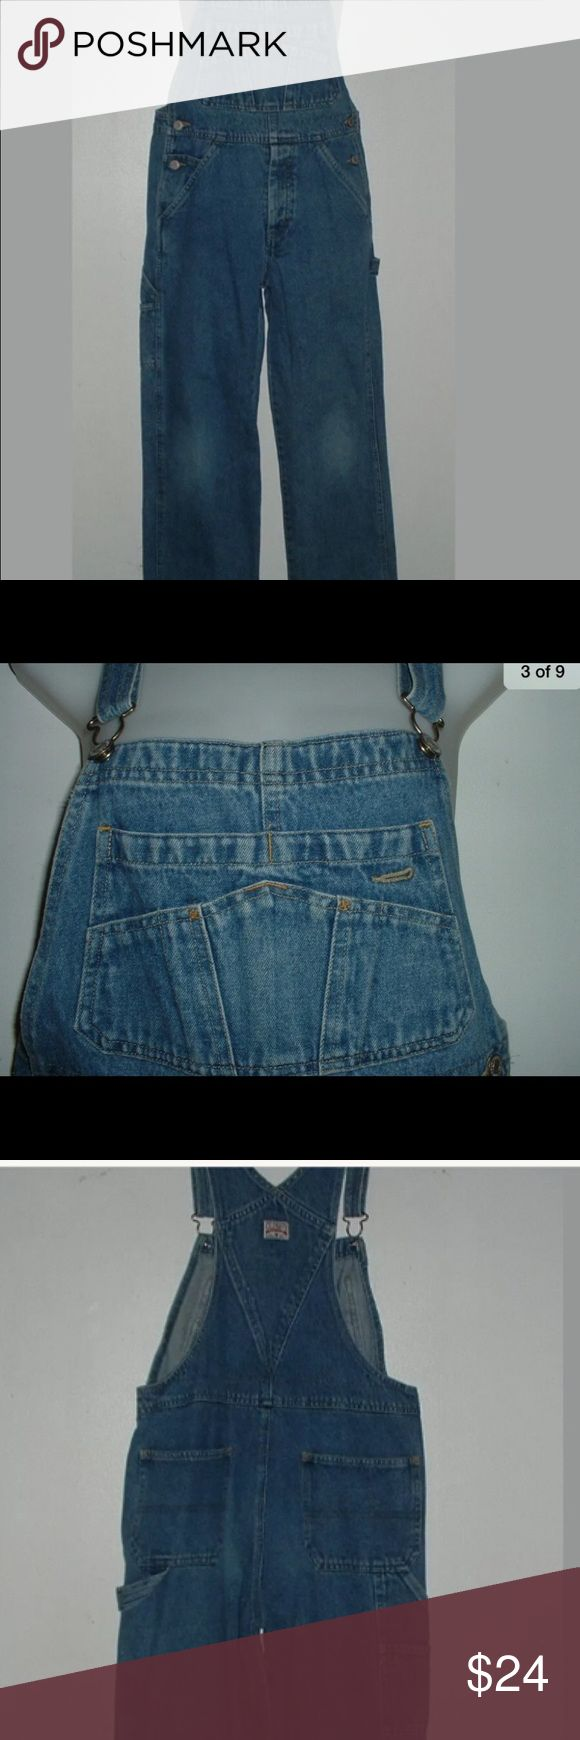 Old Navy Youth Denim Bib Carpenter Overalls. Youth/petite adult size 10. Been hidden in the closet. Never been worn. Washed and ready to wear. Old Navy Other